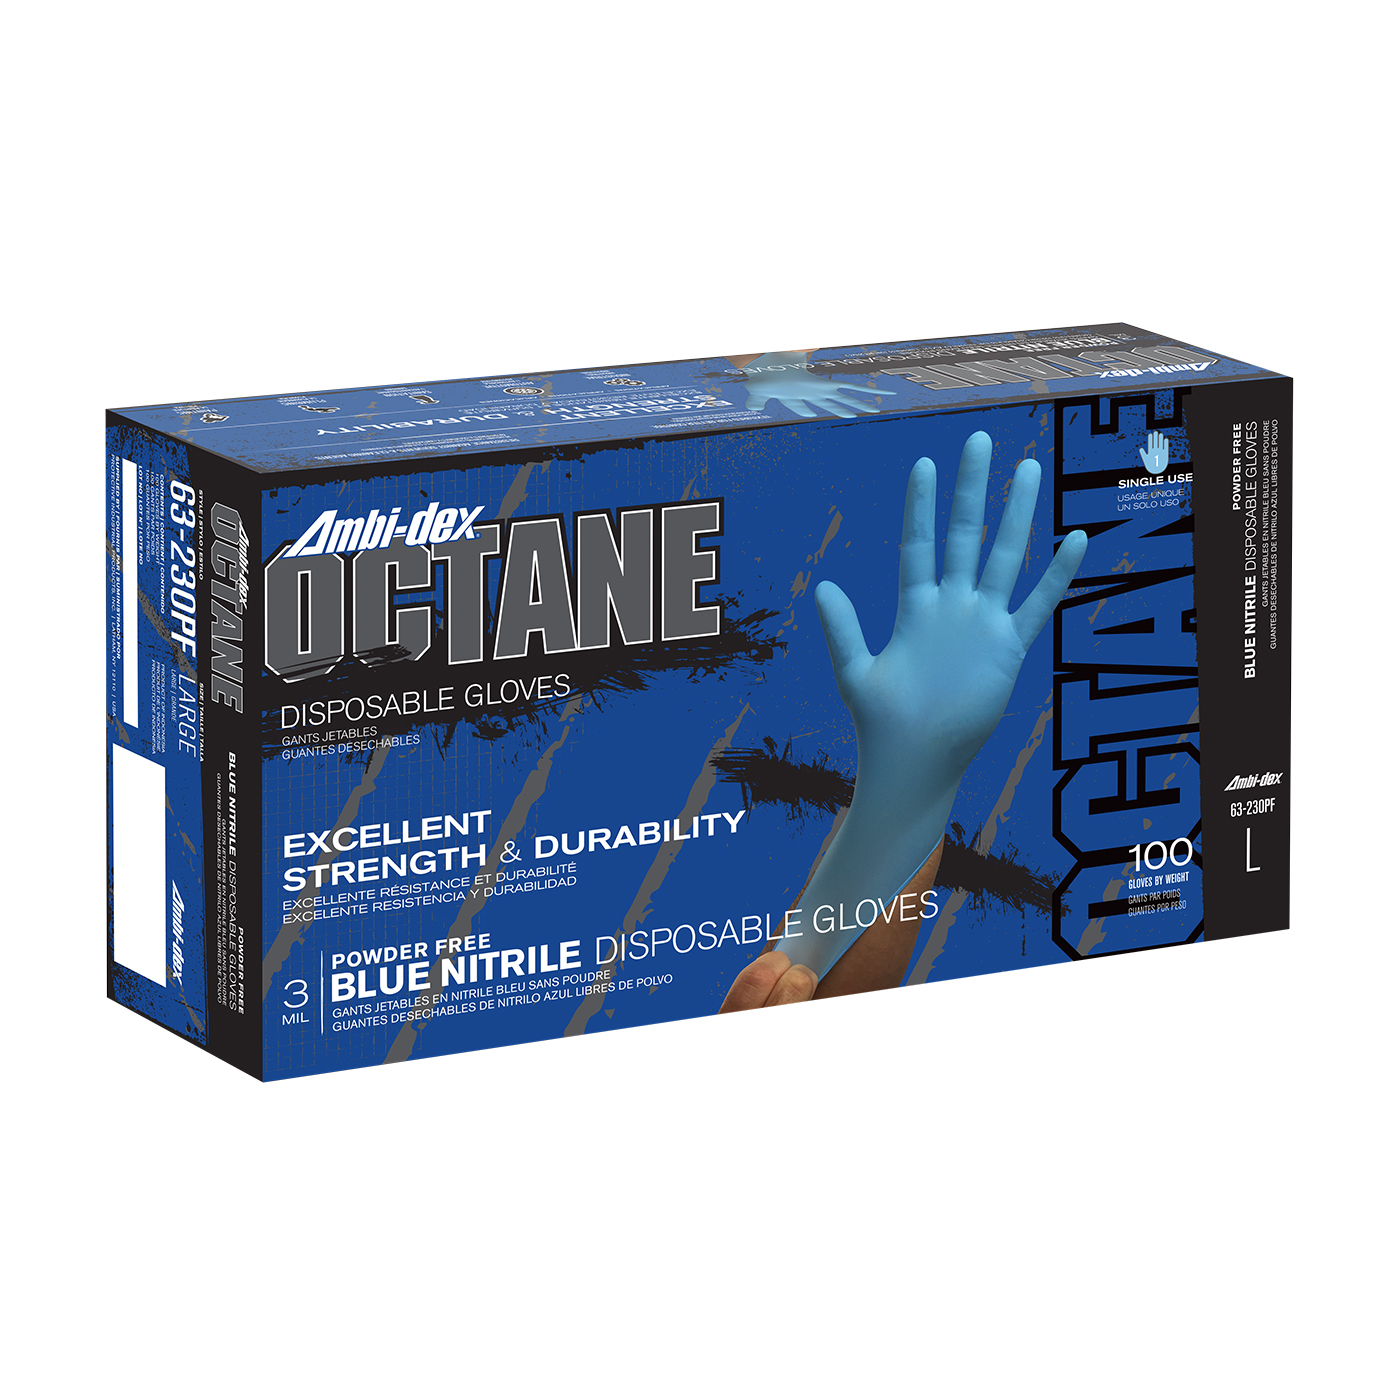 #63-230PF Ambi-dex® Octane Disposable Nitrile Glove, Powder Free with Textured Grip - 3 mil